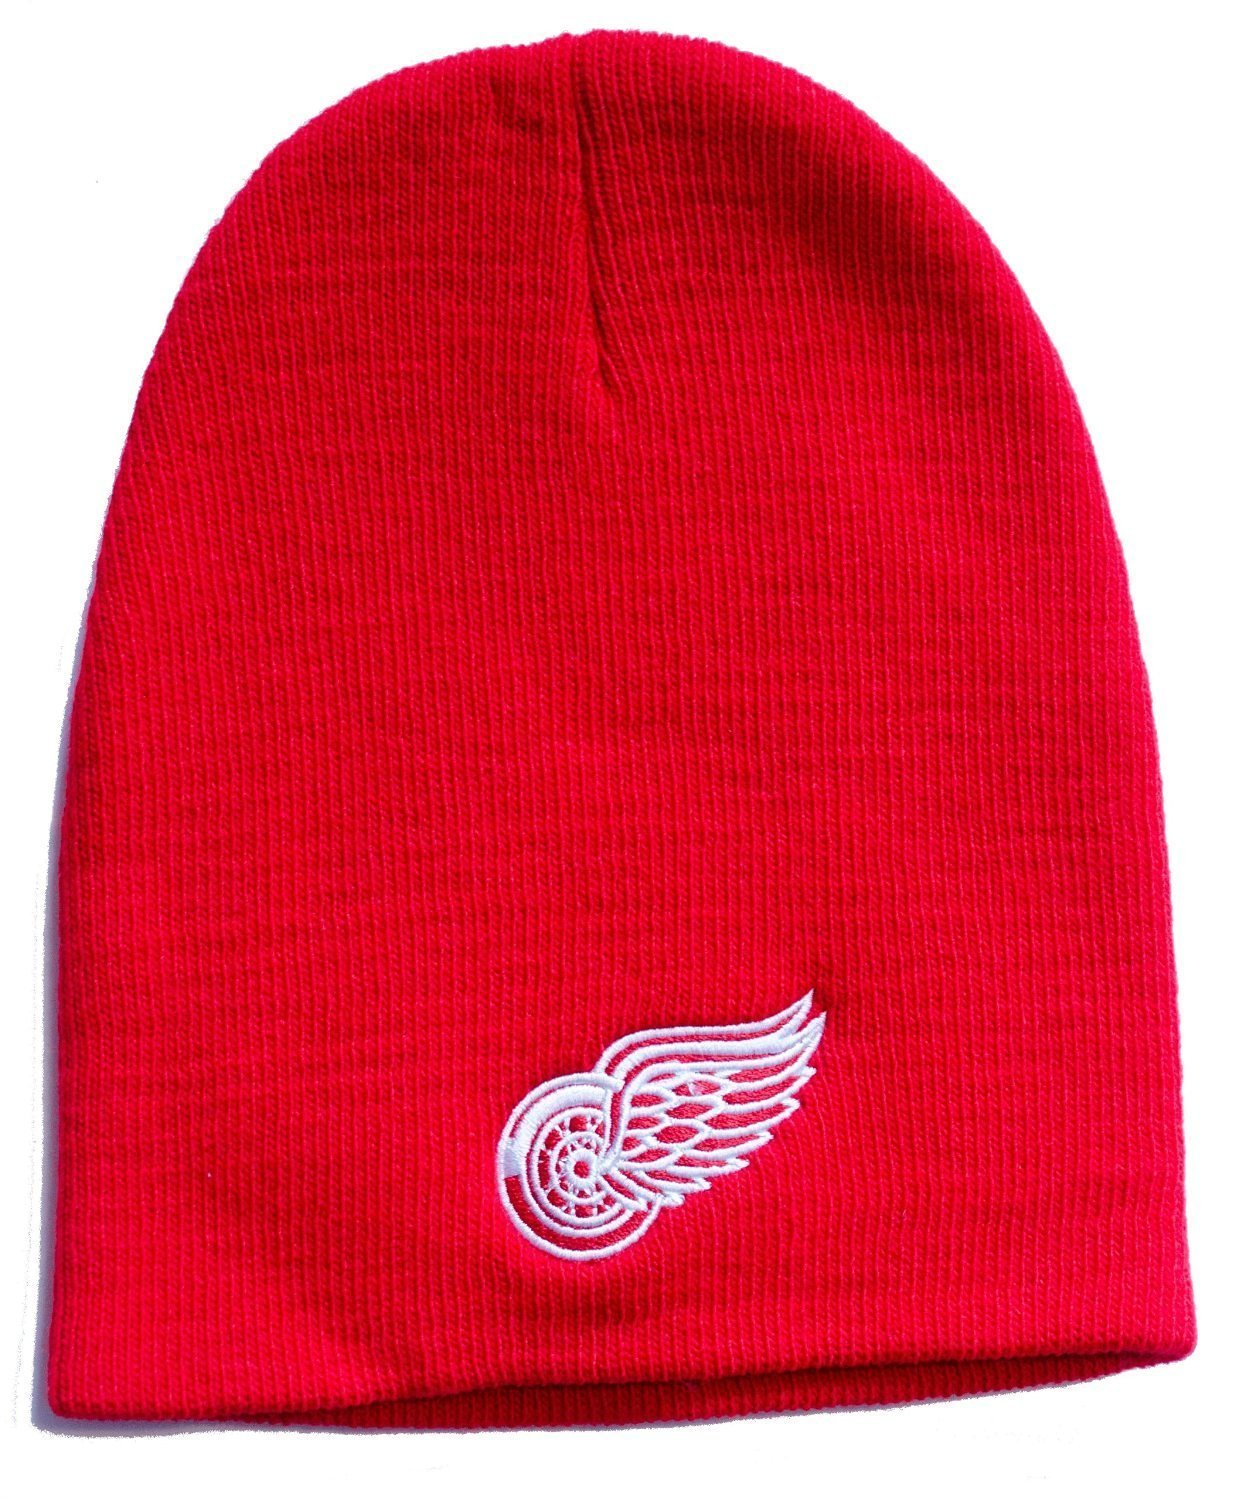 5ee223262 Cheap Red Wings Beanie, find Red Wings Beanie deals on line at ...